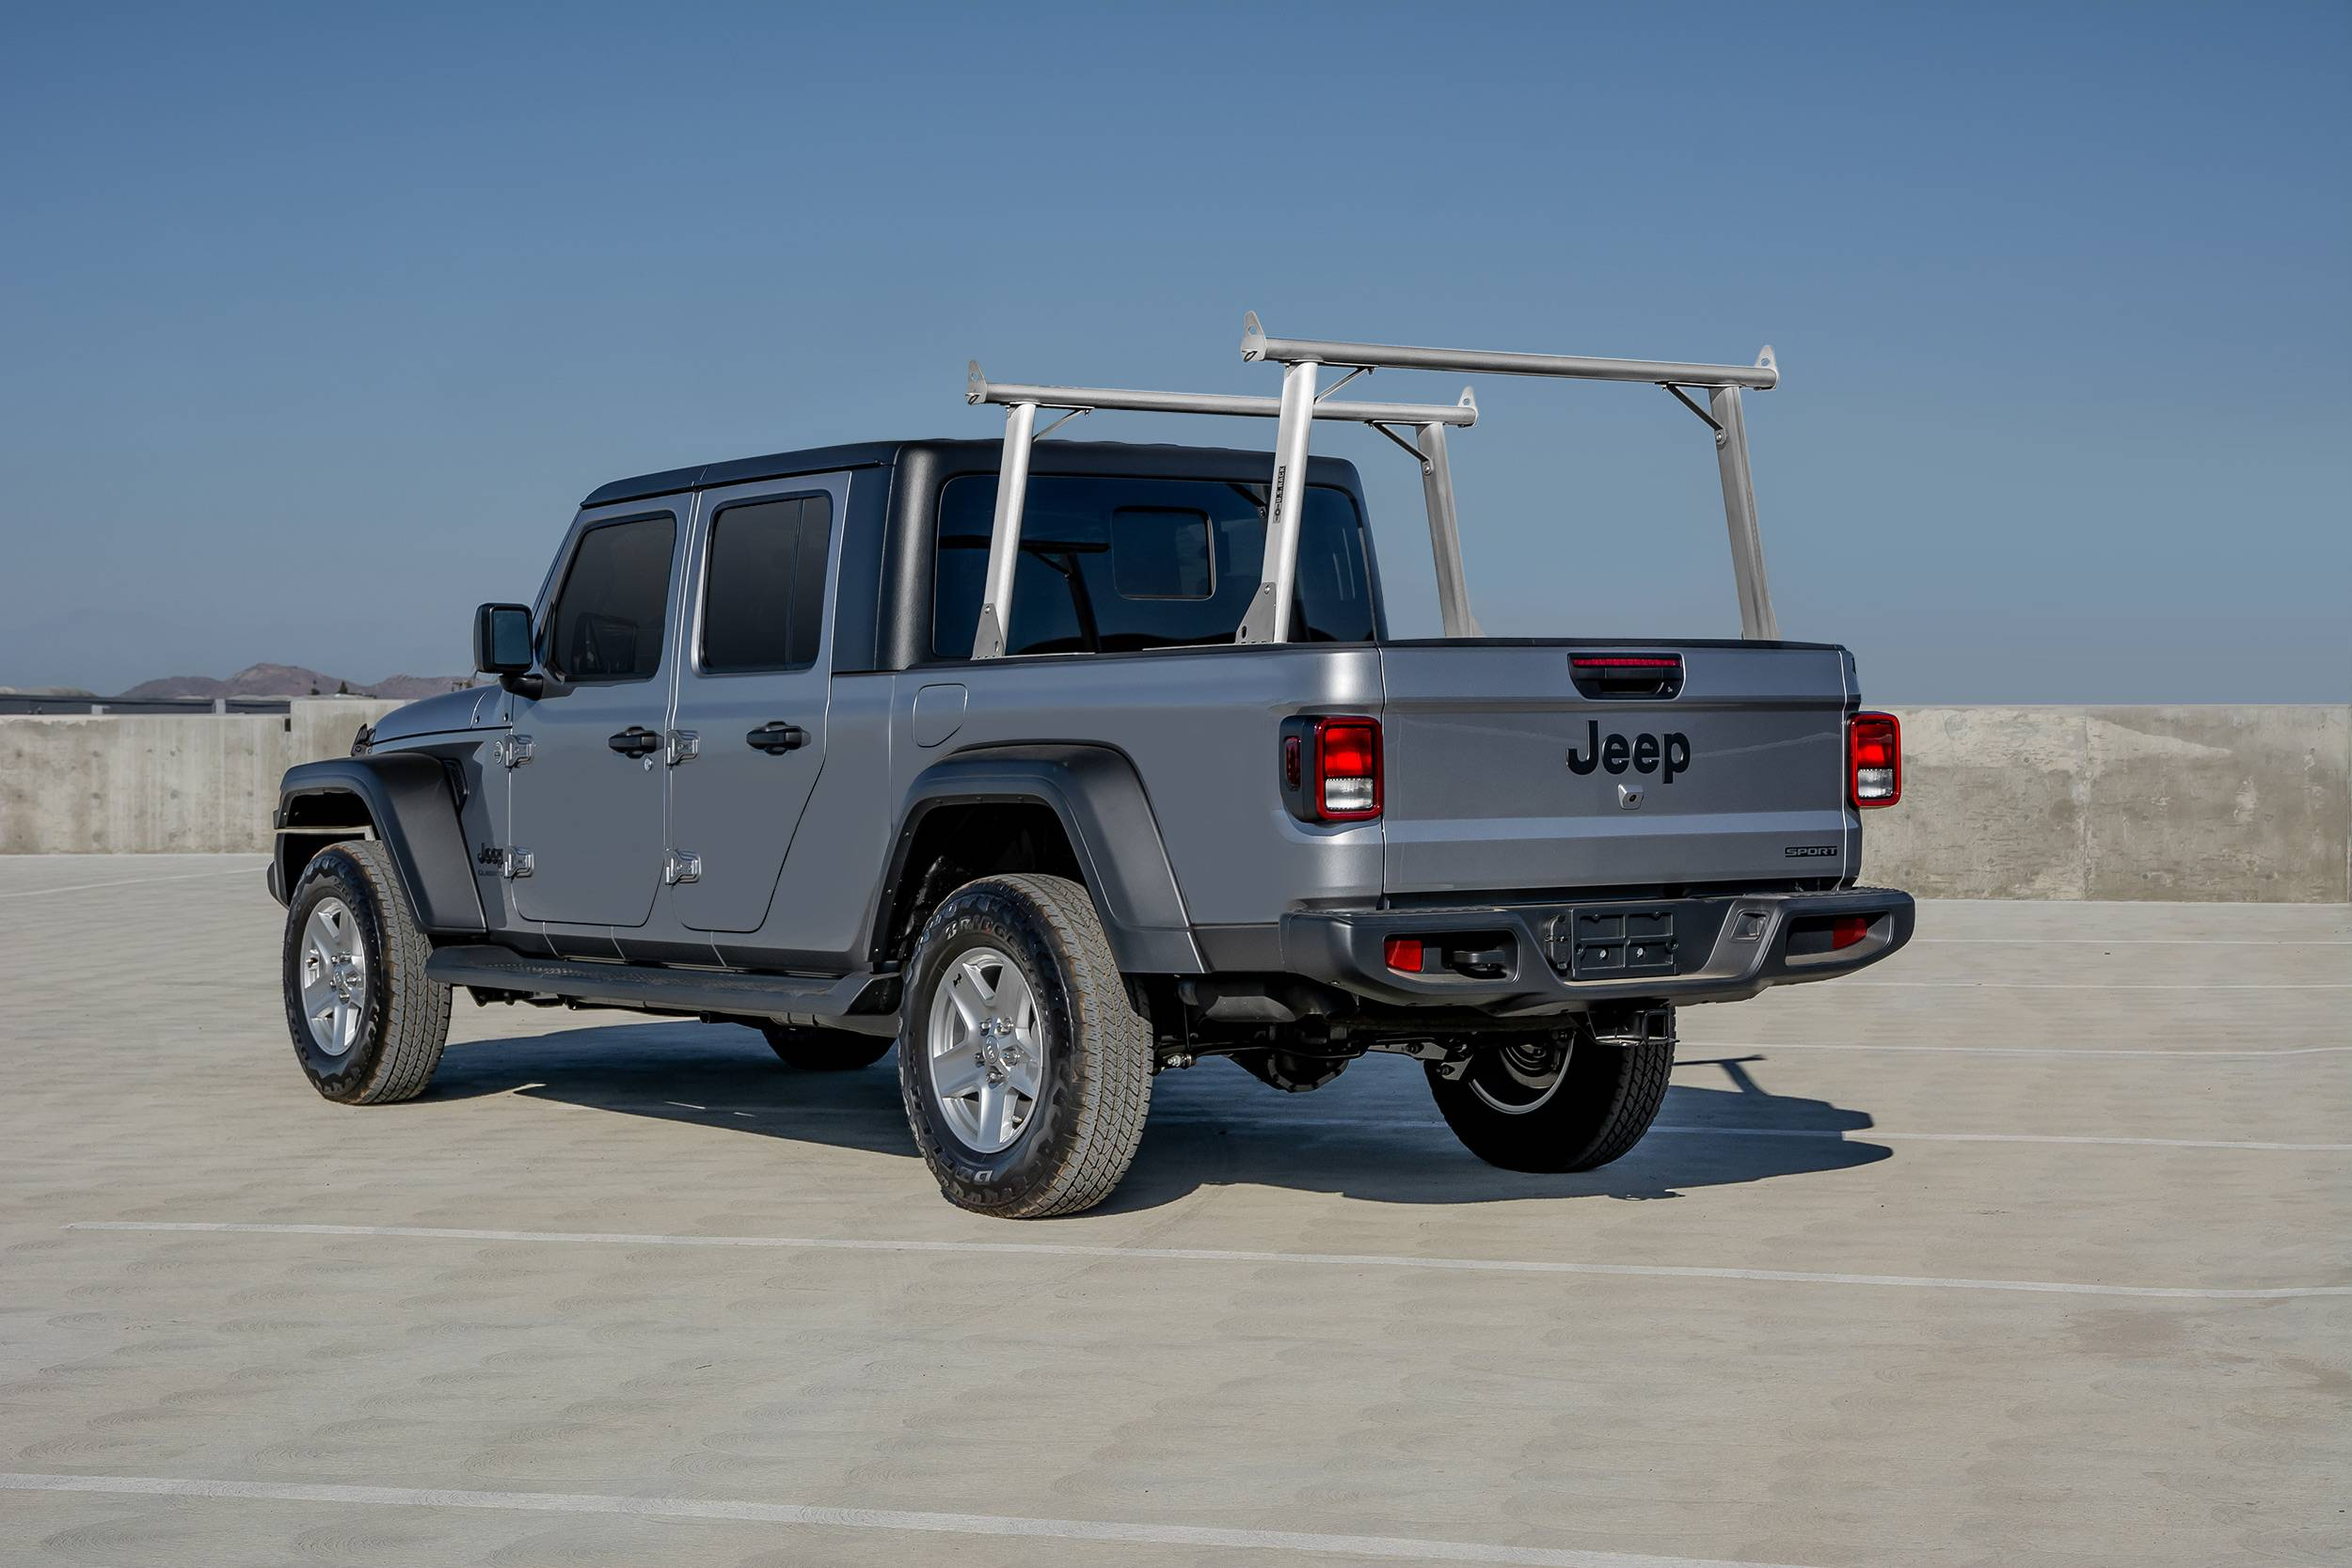 82240150 2020 jeep gladiator clipper truck rack fleetside track system above cab height brushed